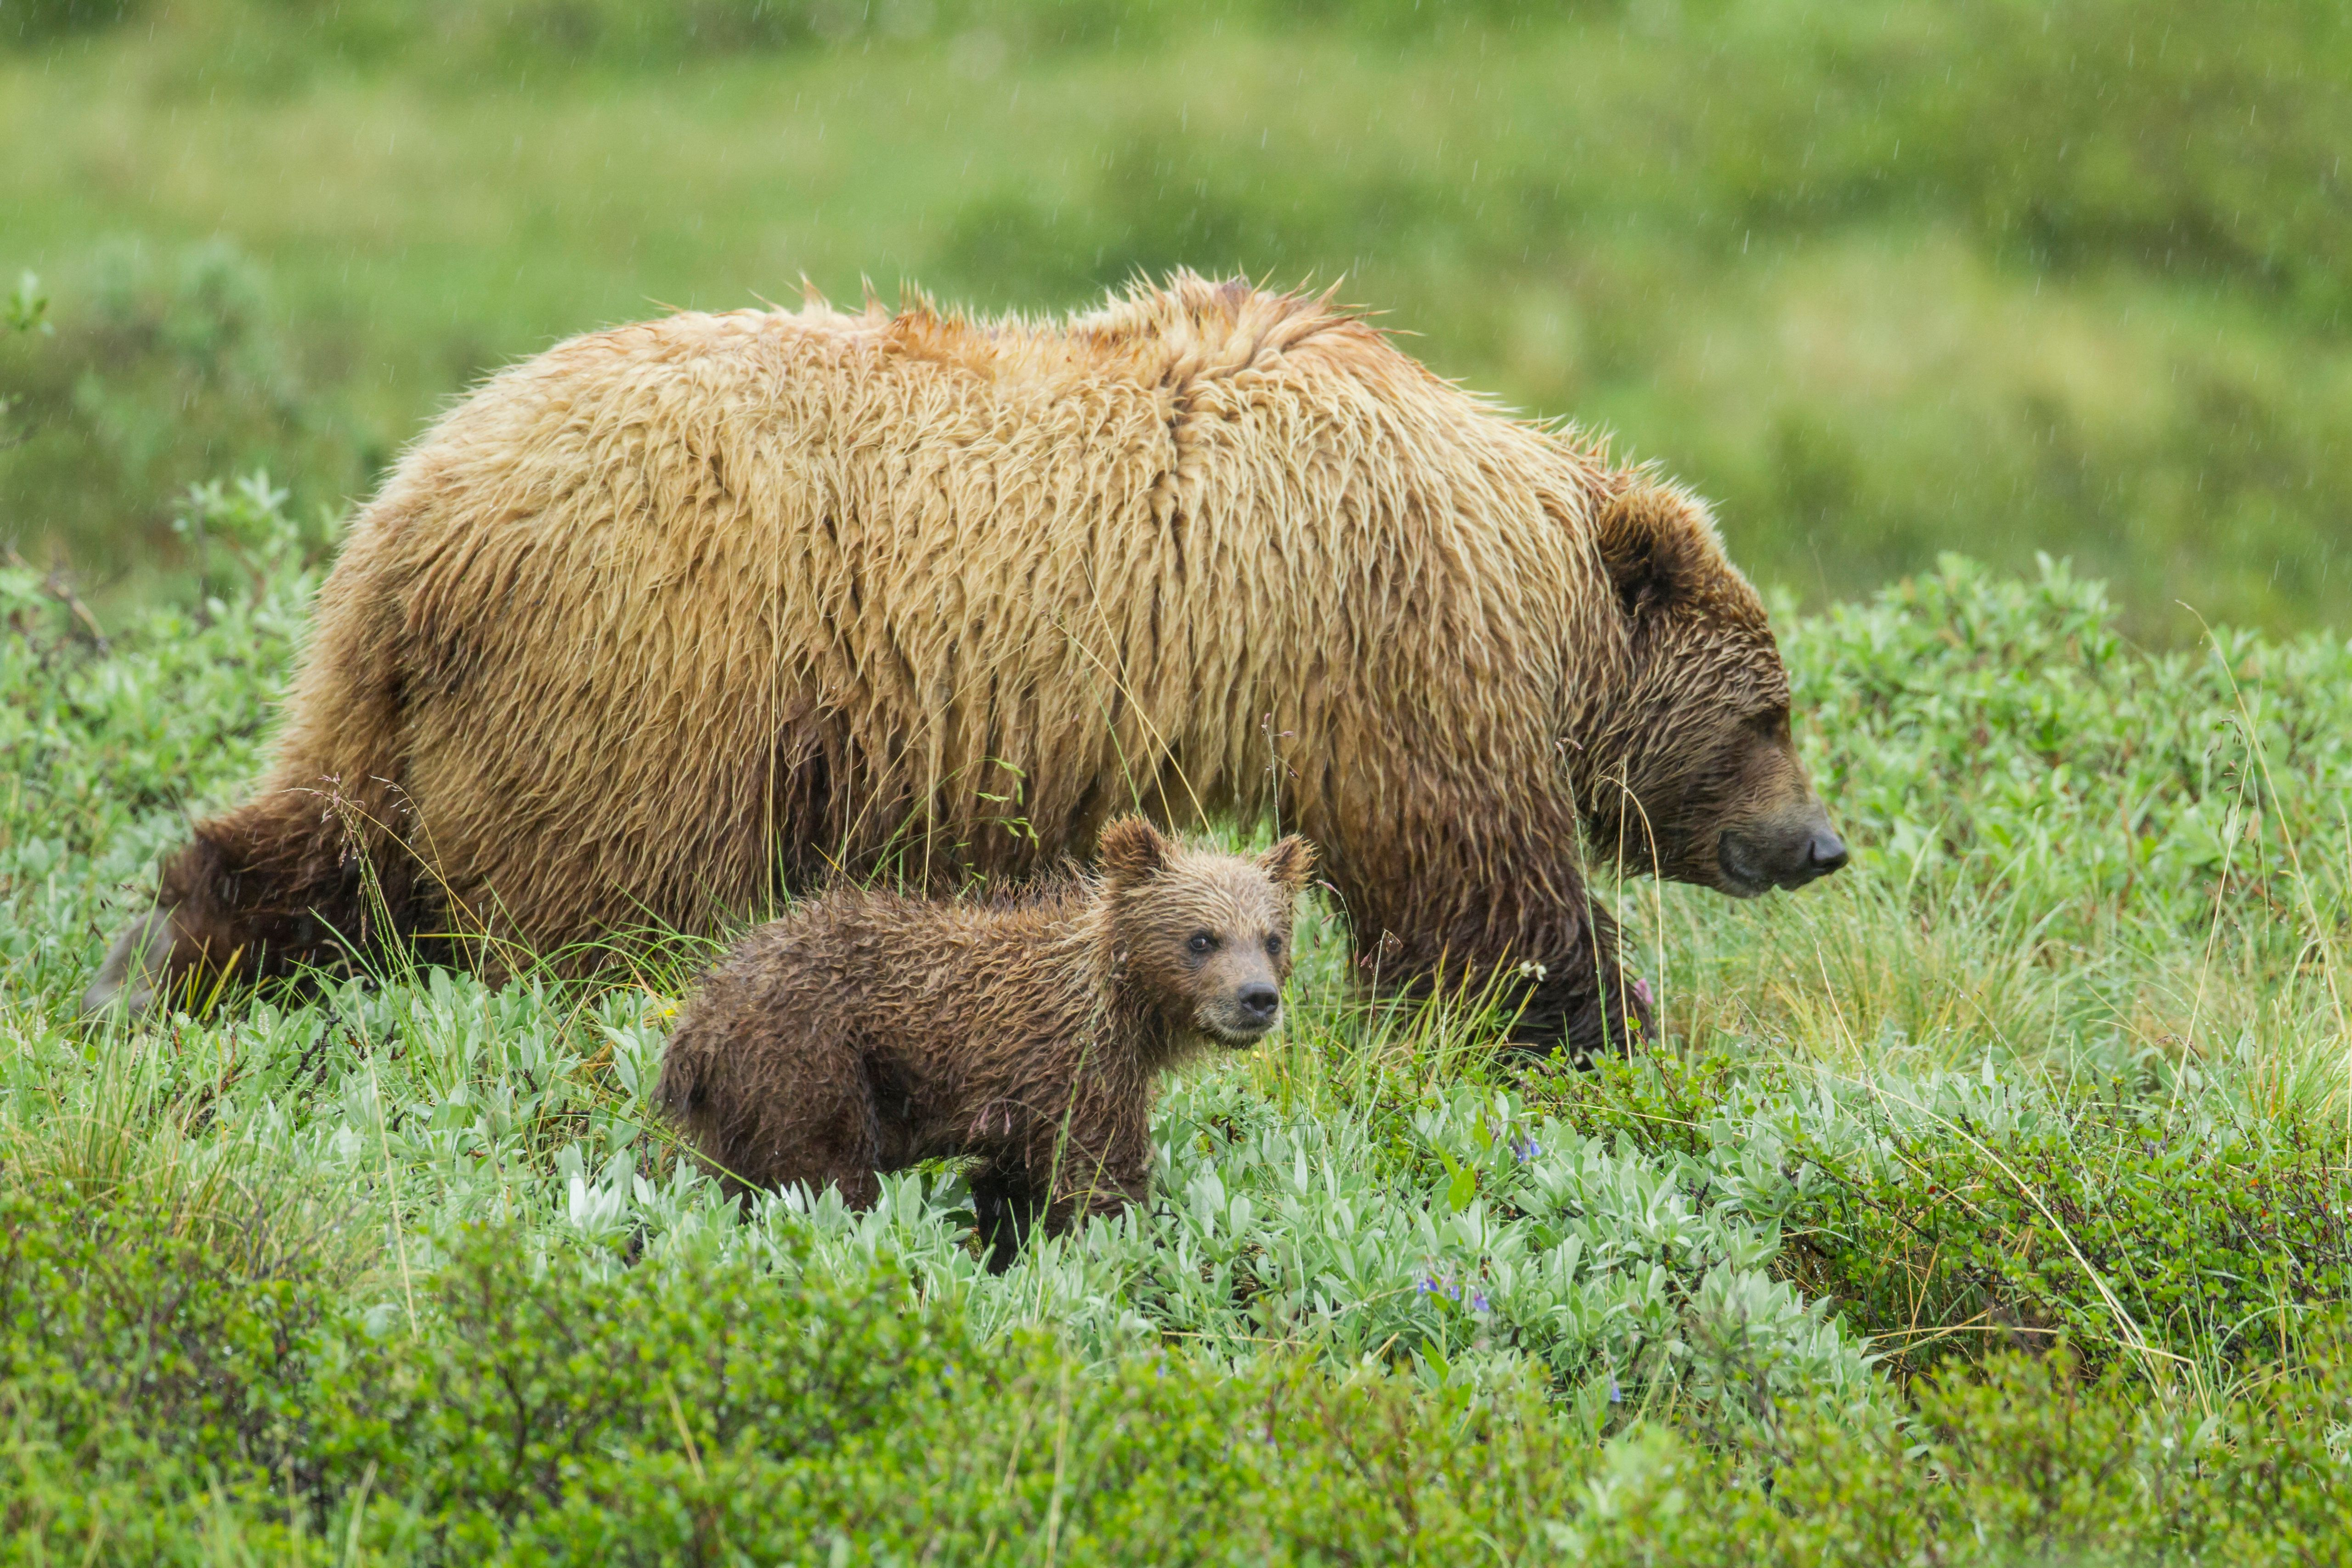 Portrait Of A Grizzly Bear Sow With A Spring Cub Walking On The Tunda In The Rain, In Denali National Park And Preserve, Interior Alaska, Summer